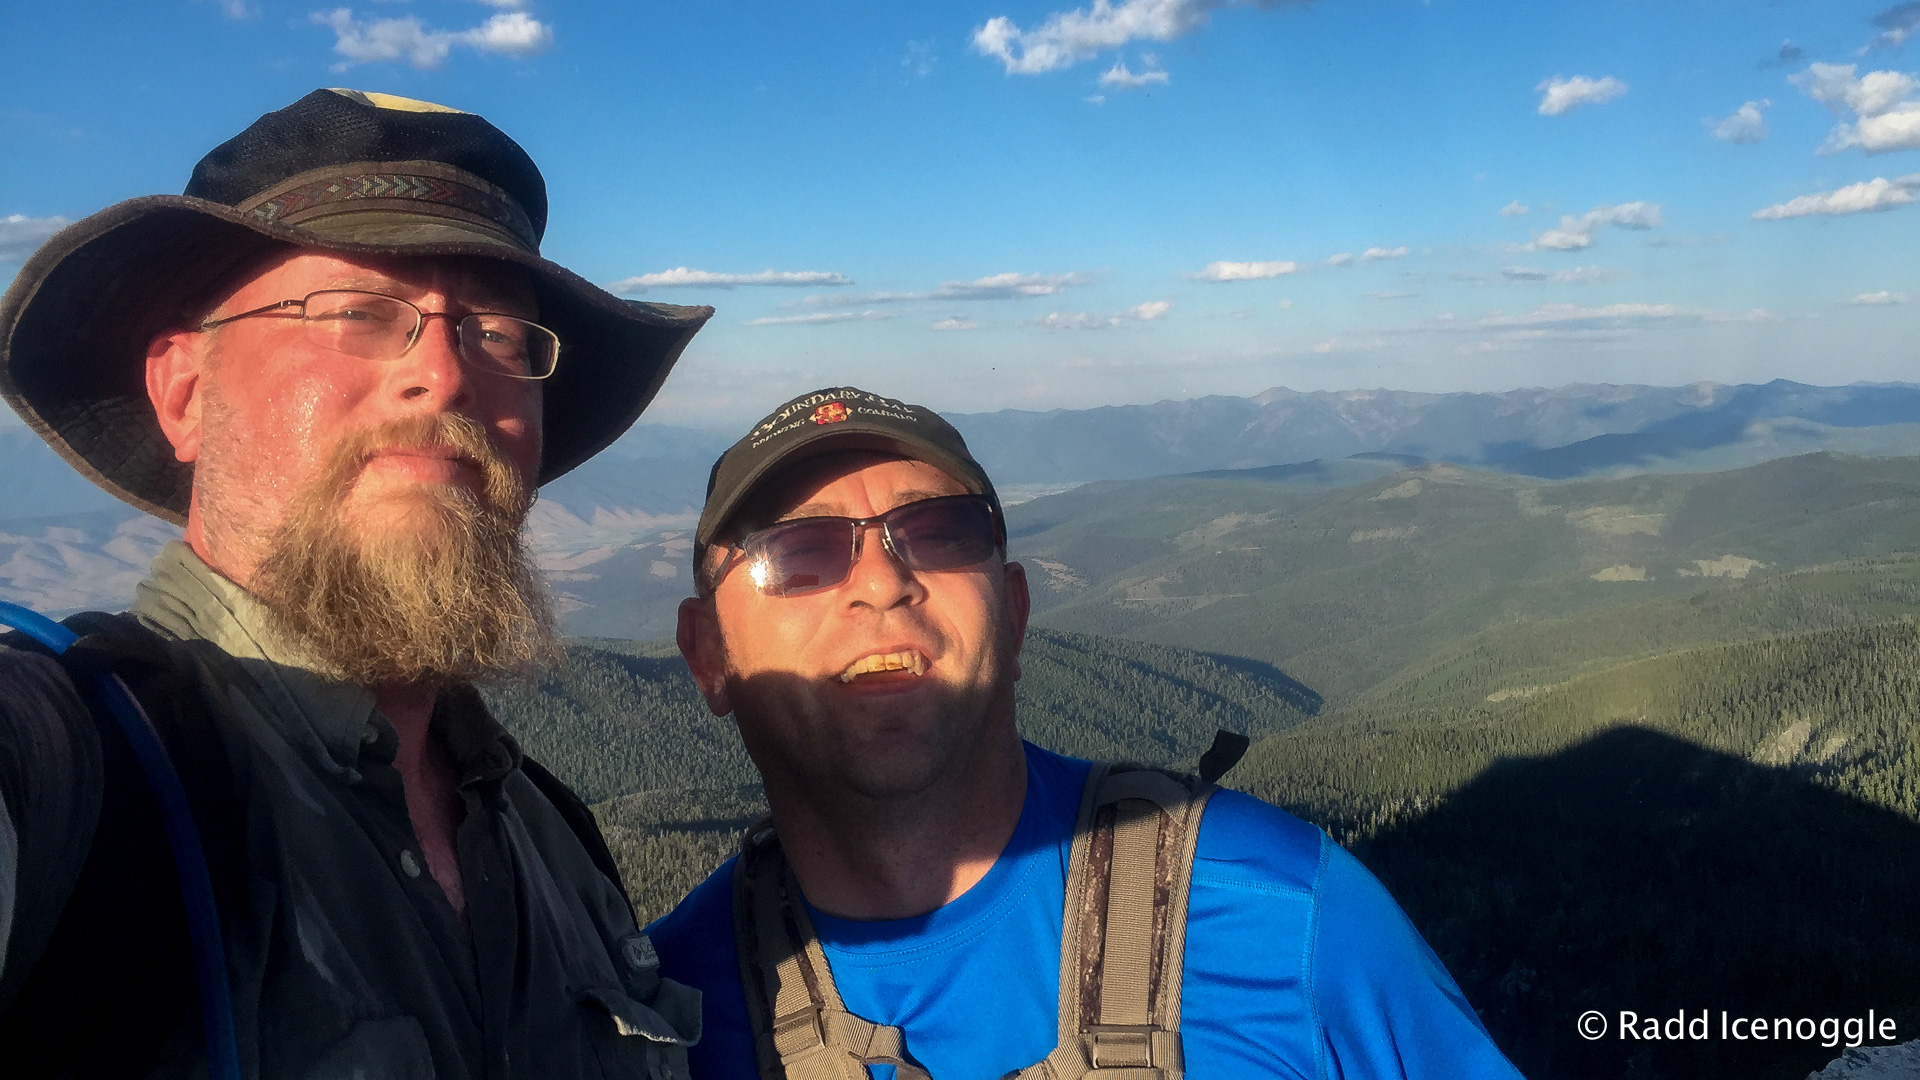 Jeff and I in a summit selfie